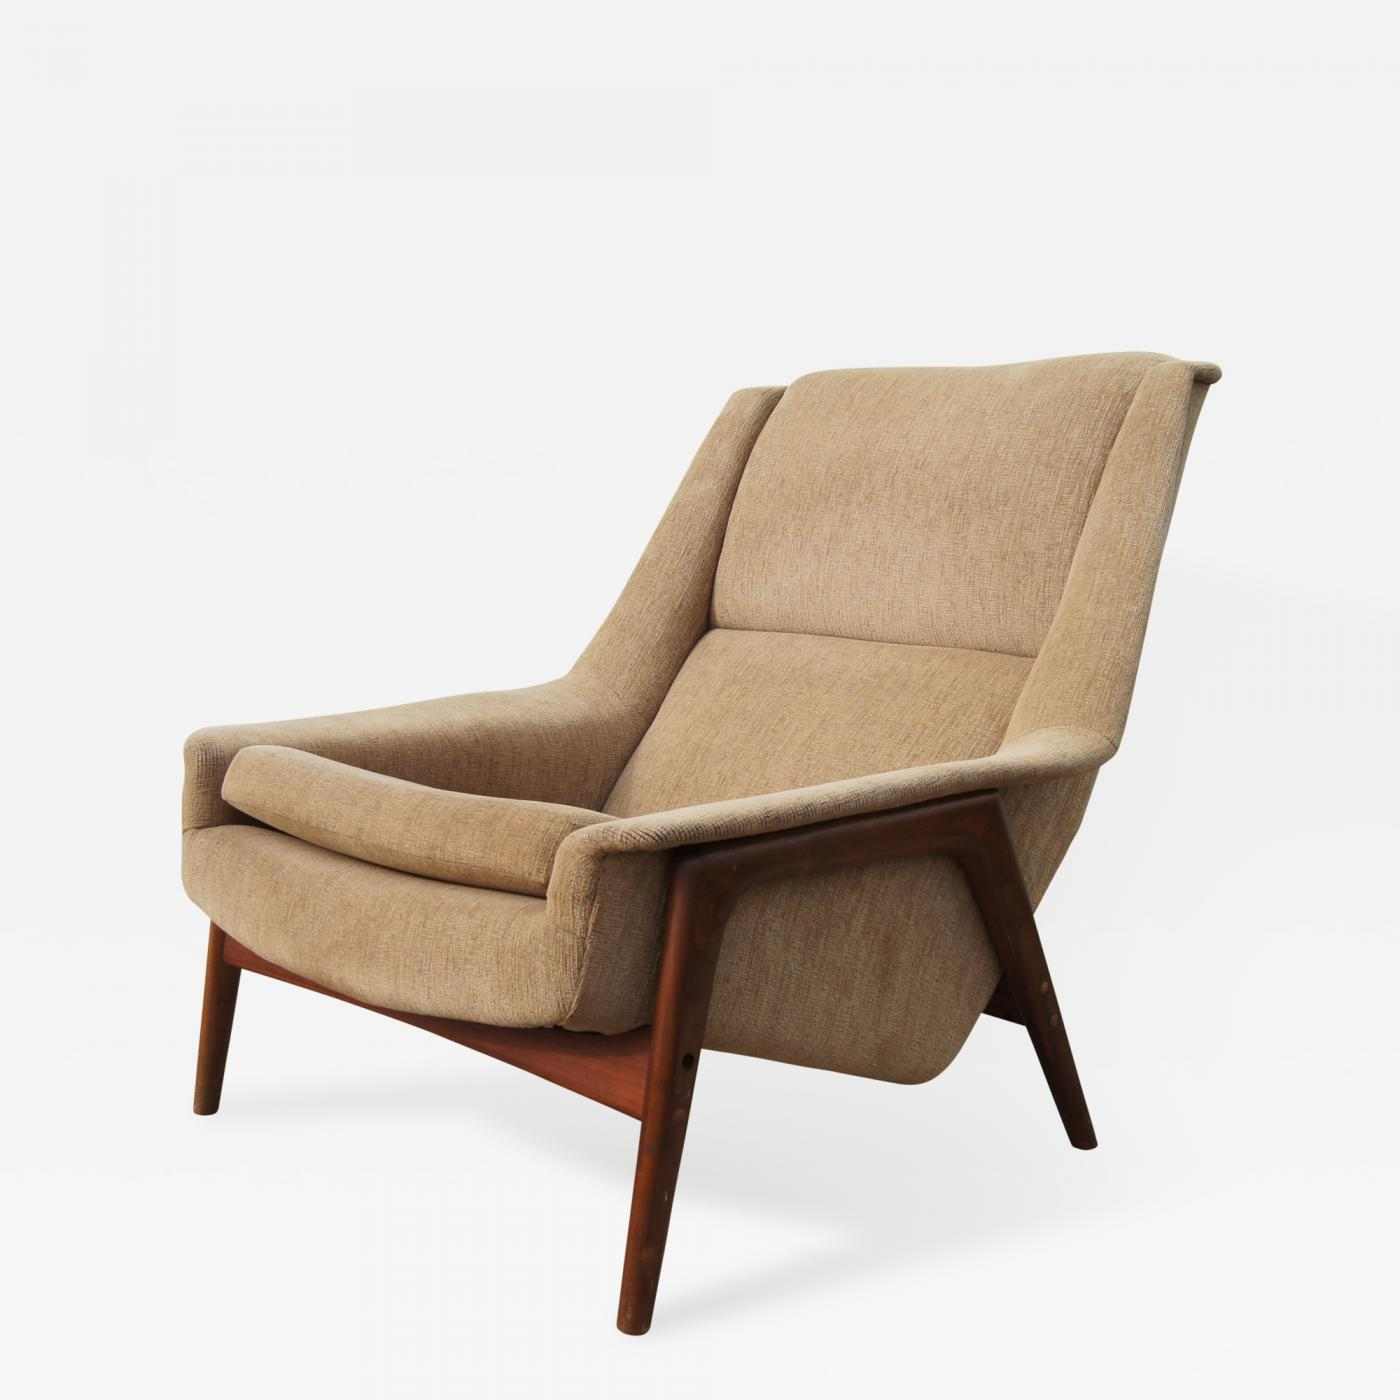 Amazing Listings / Furniture / Seating / Armchairs